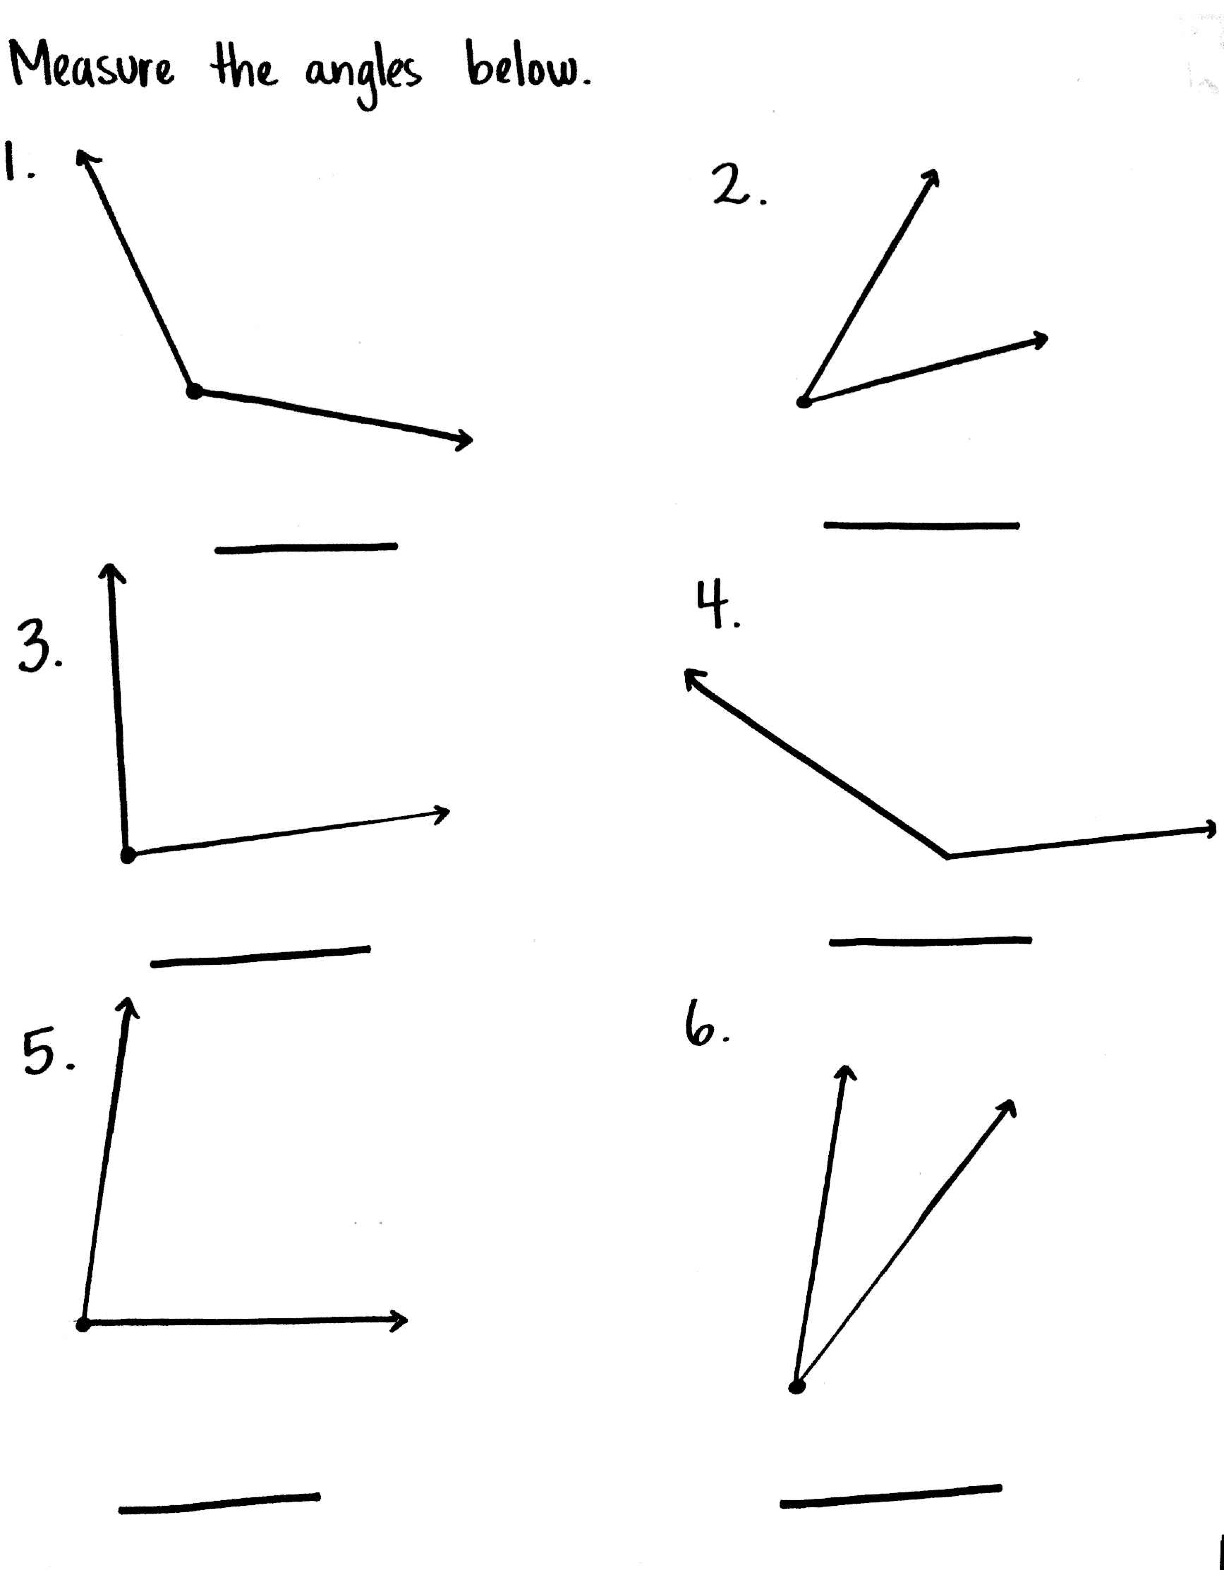 Aldiablosus  Pleasant Angle Measurement Worksheet Determining Angles With Protractors  With Interesting Drawing And Measuring Angles Worksheet On Angles Measuring Worksheet With Enchanting Spanish Telling Time Worksheets Also Equations With Two Variables Worksheet In Addition Printable Math Worksheets For Th Grade And Th Grade Addition Worksheets As Well As Reducing Radicals Worksheet Additionally Abc Kindergarten Worksheets From Letstalkhiphopus With Aldiablosus  Interesting Angle Measurement Worksheet Determining Angles With Protractors  With Enchanting Drawing And Measuring Angles Worksheet On Angles Measuring Worksheet And Pleasant Spanish Telling Time Worksheets Also Equations With Two Variables Worksheet In Addition Printable Math Worksheets For Th Grade From Letstalkhiphopus